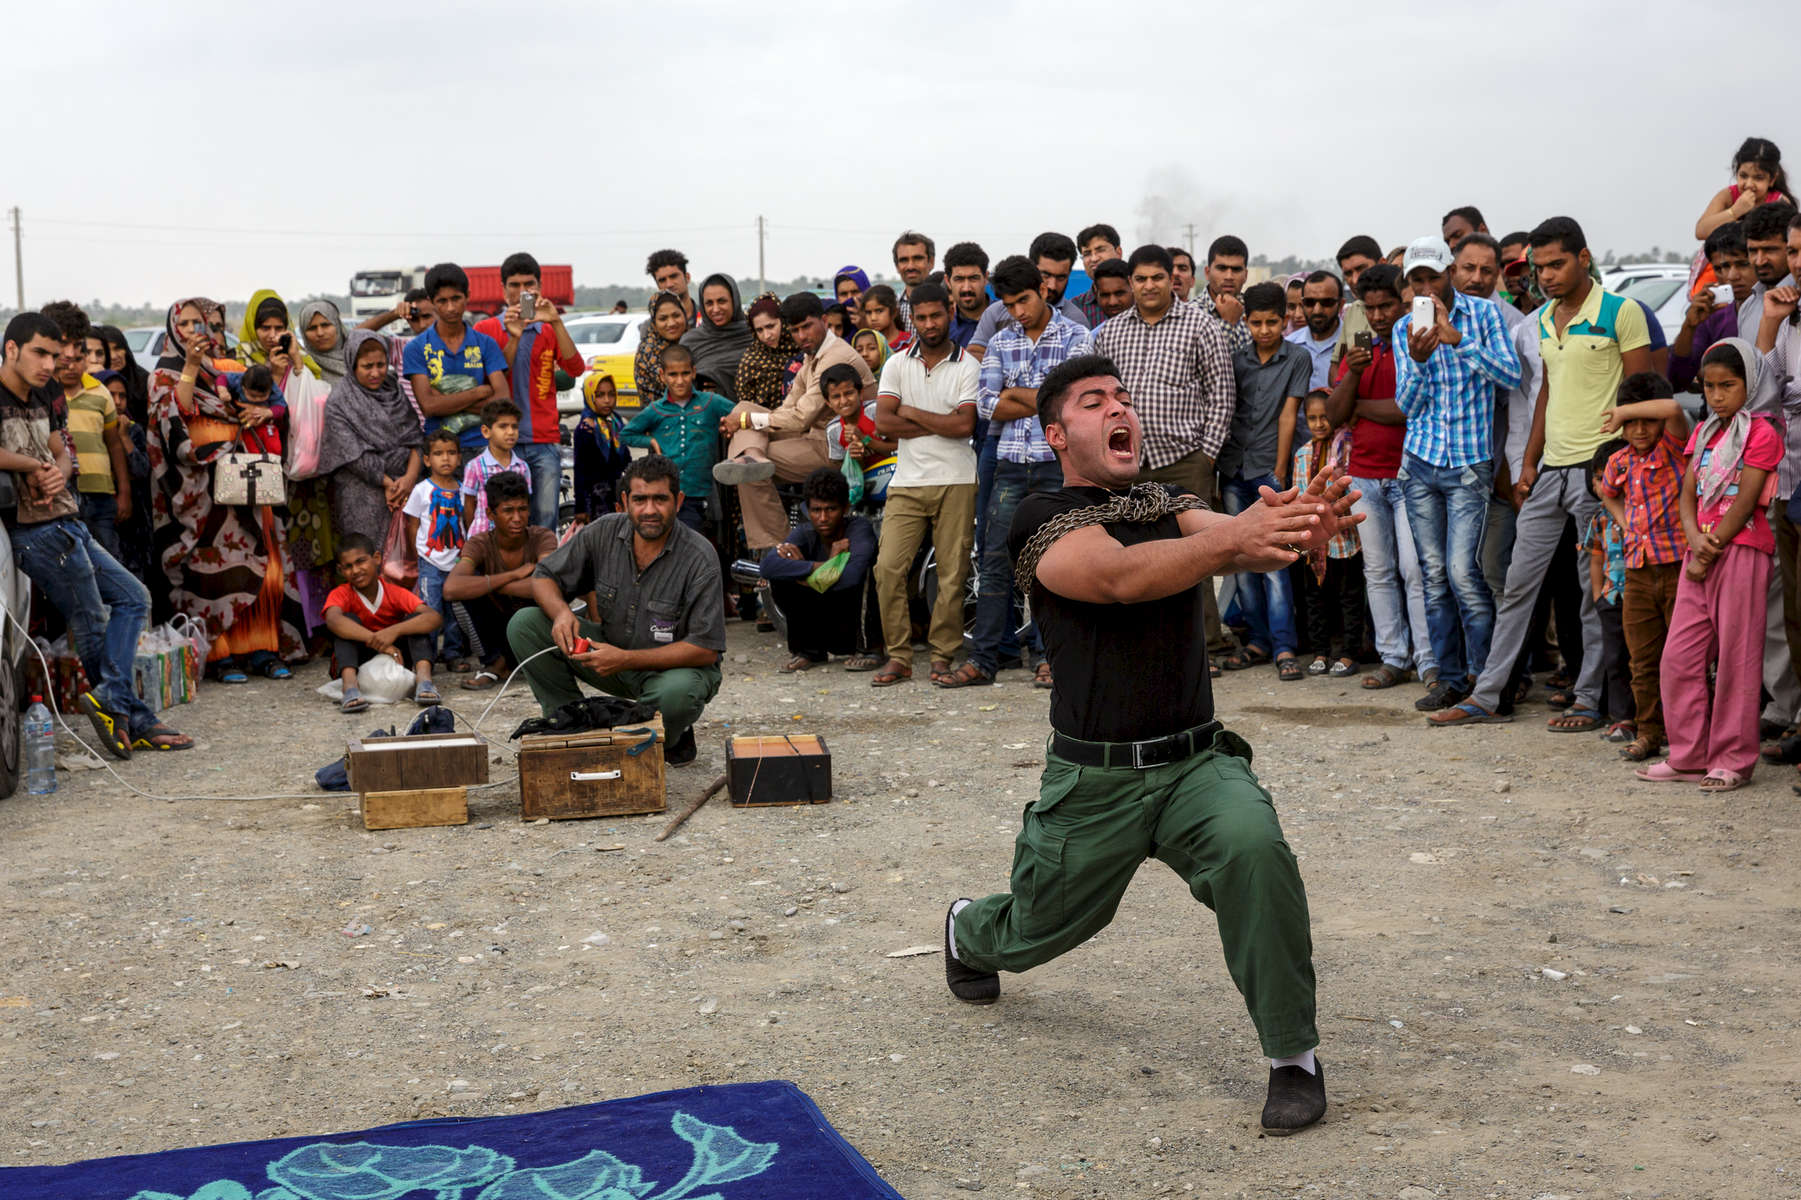 A strongman theatrically struggles to break free of chains in Minab, Southern Iran.  His performance could be considered something of a metaphor for the general feeling encountered in the country; which was that of a people desperate for greater opportunities and freedoms denied by the current government.